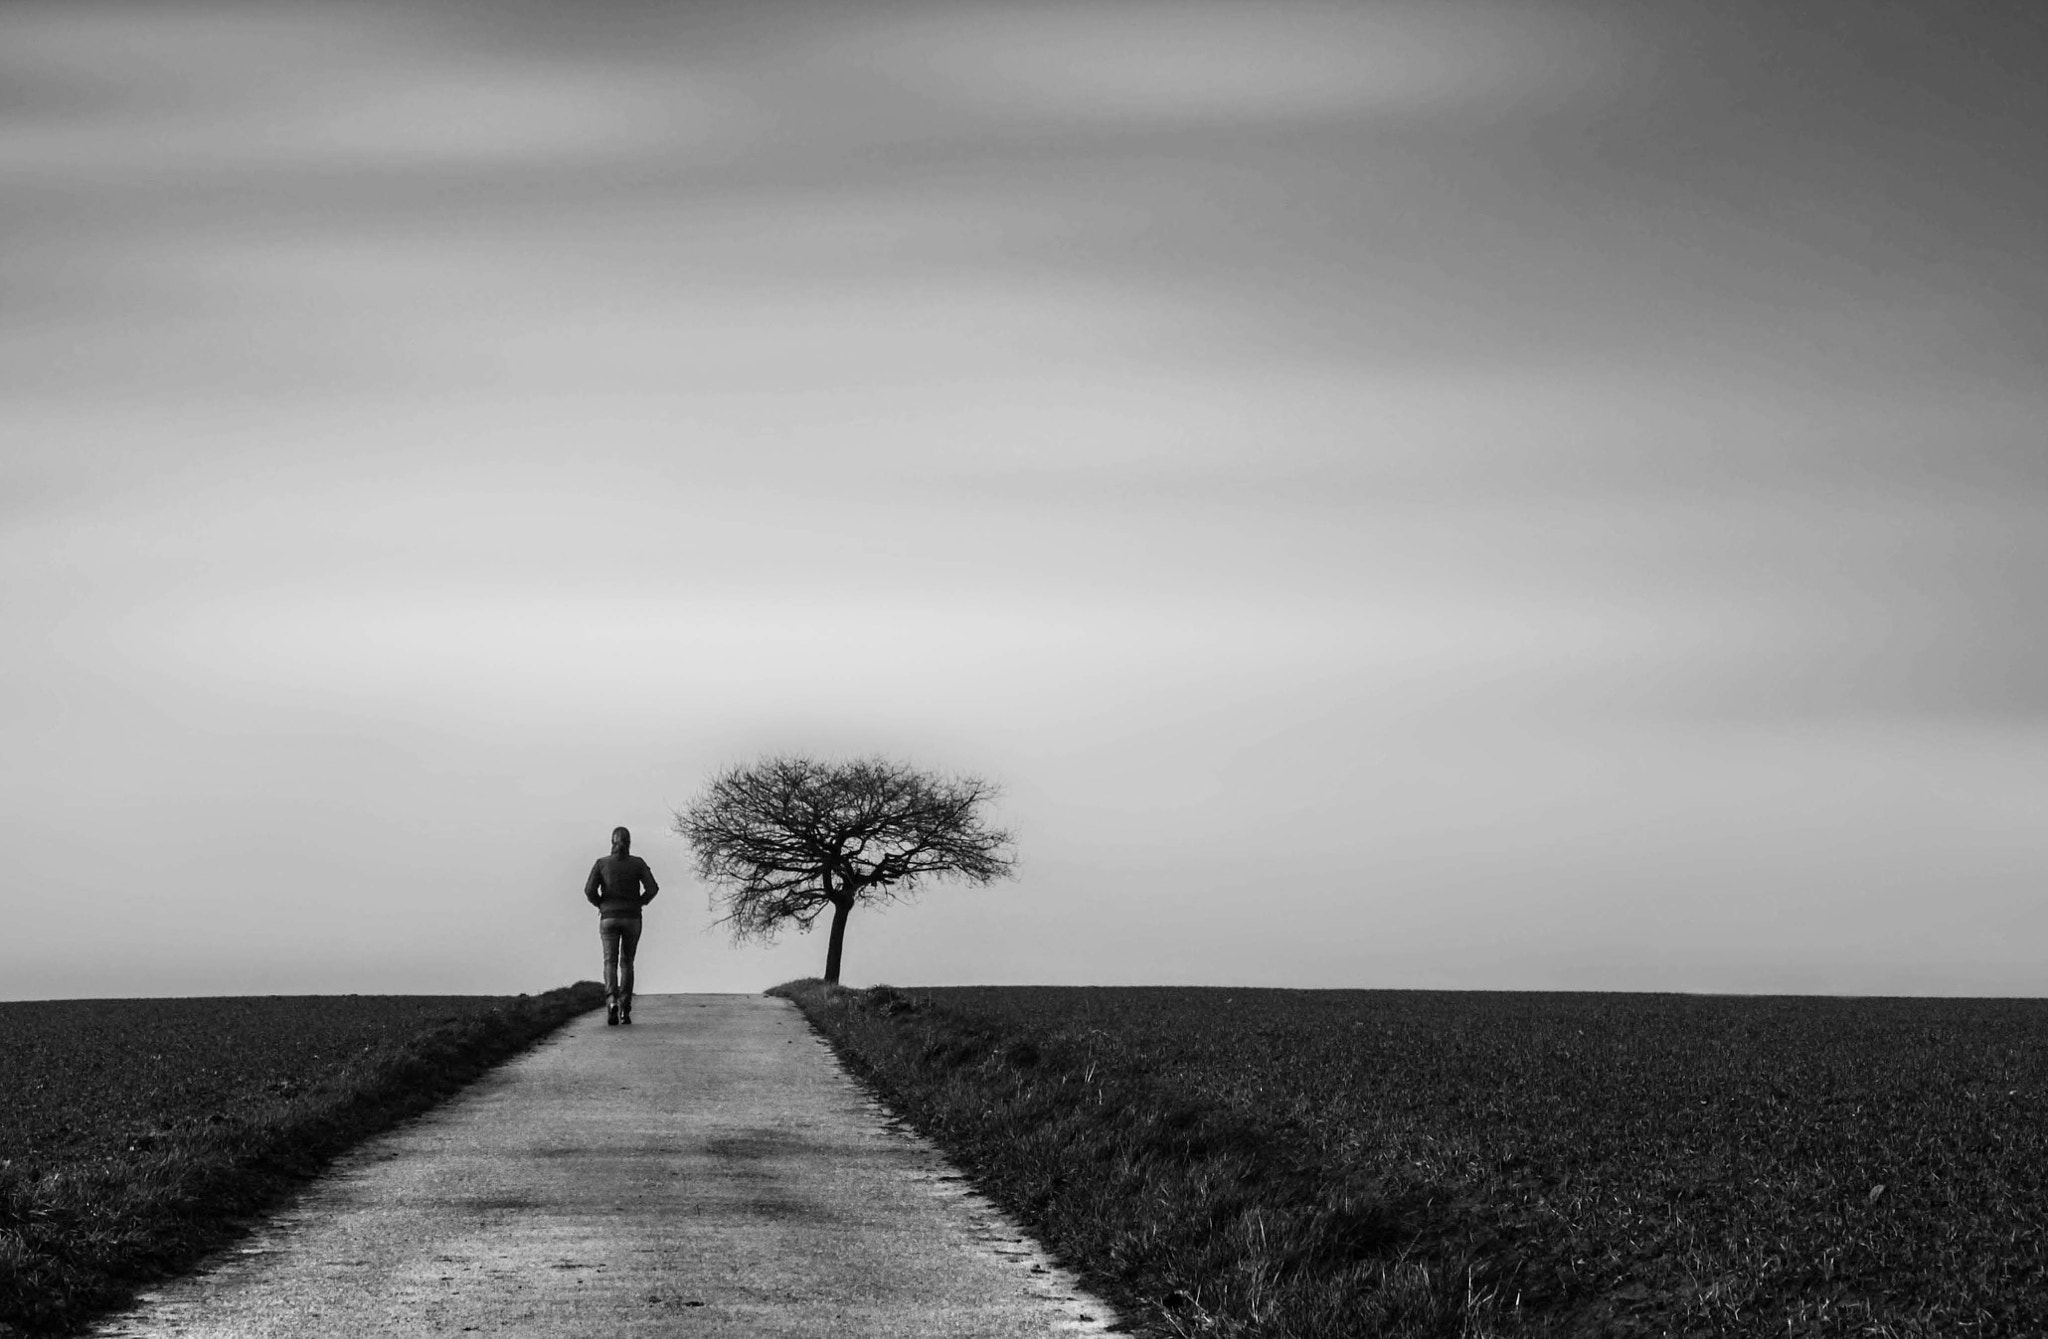 Photograph My Way by Cranky Franky on 500px